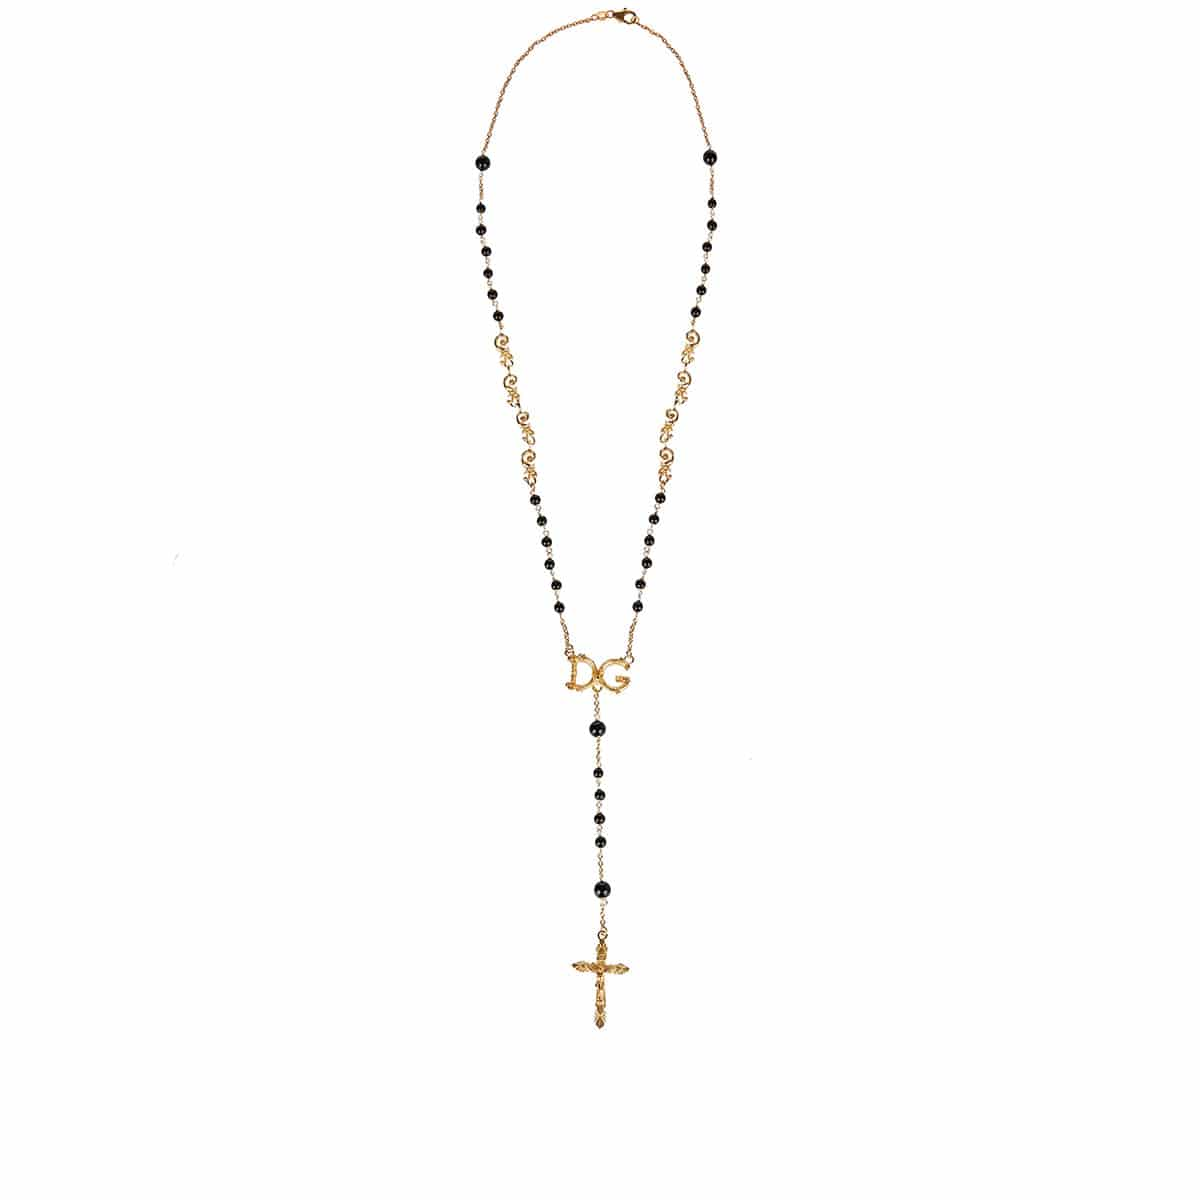 Gold-plated rosary necklace